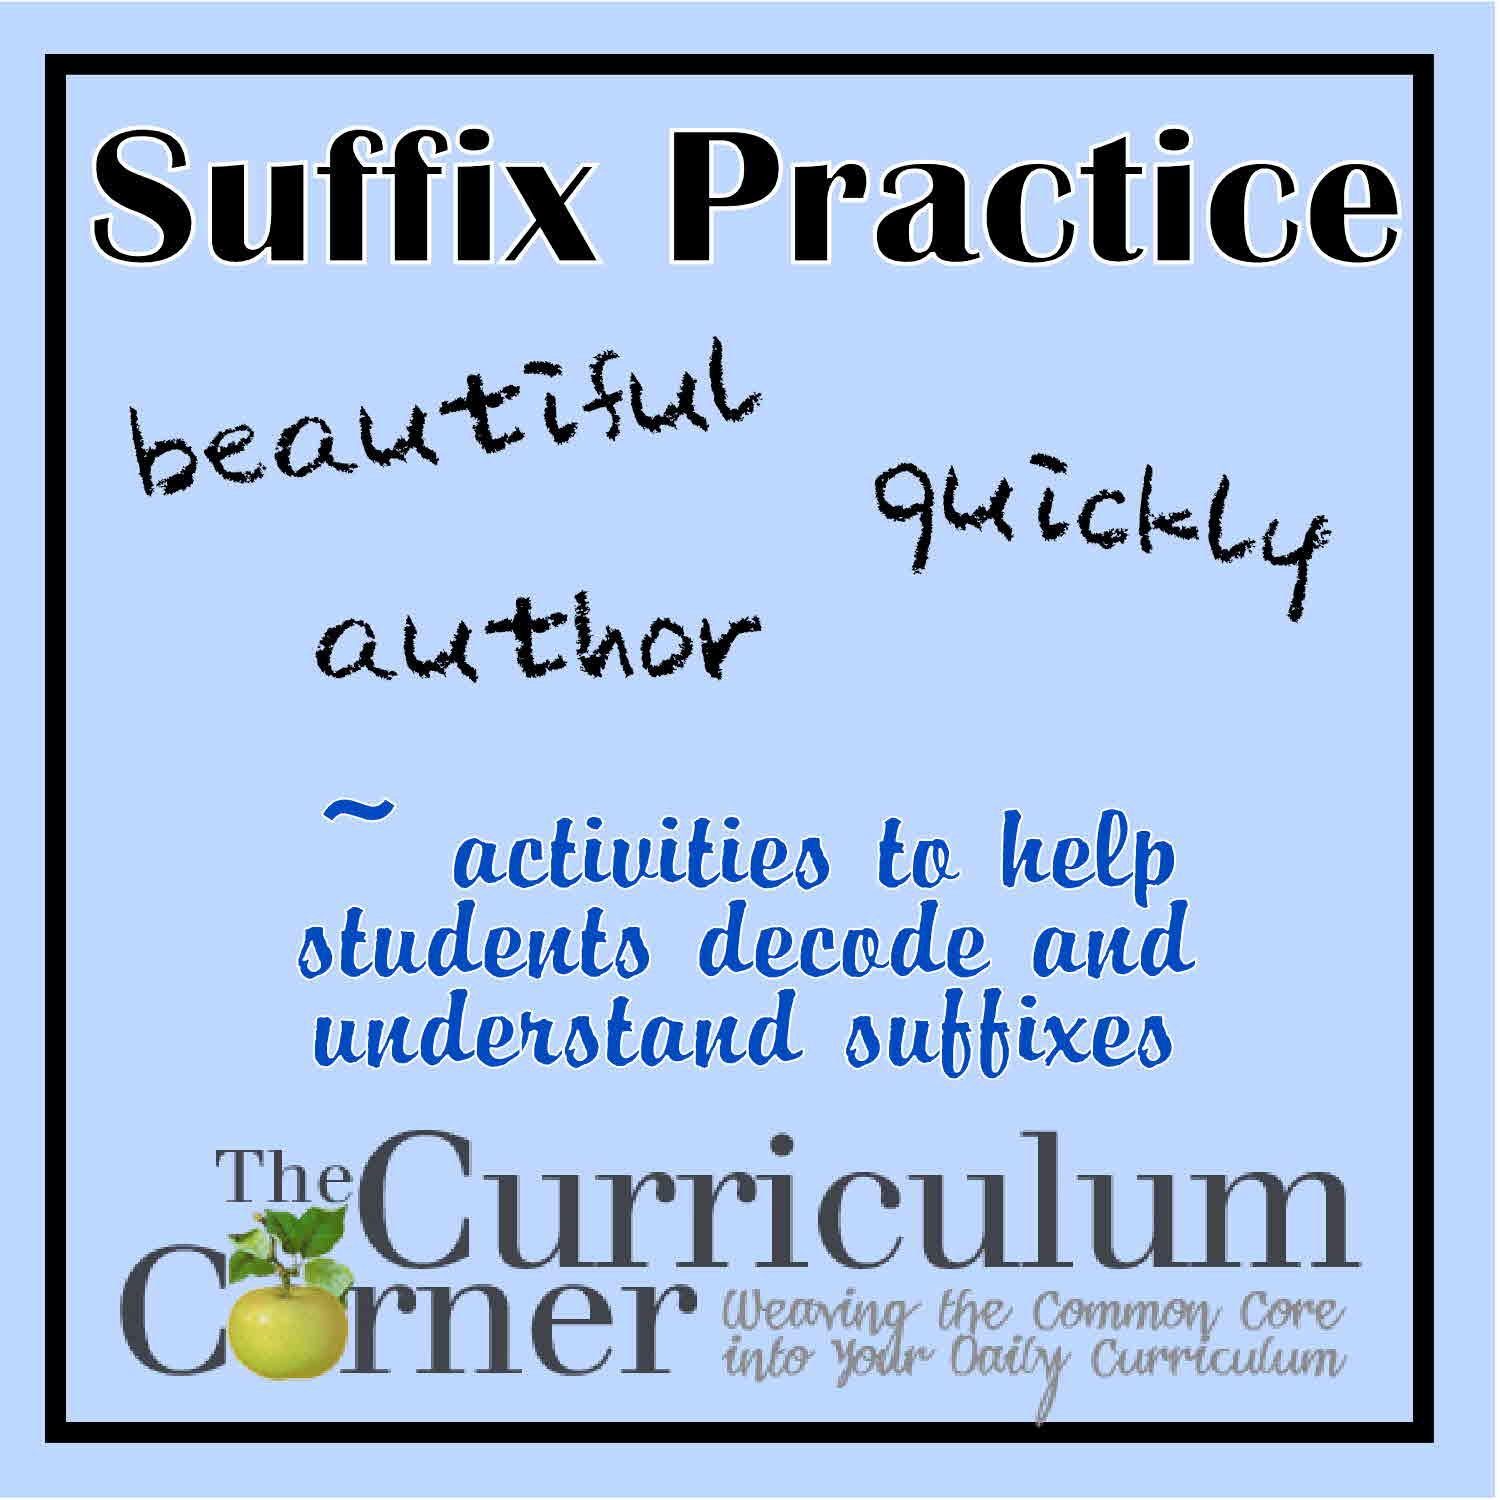 photo regarding Prefixes and Suffixes Printable Games named Nearly anything Suffixes - The Curriculum Corner 123